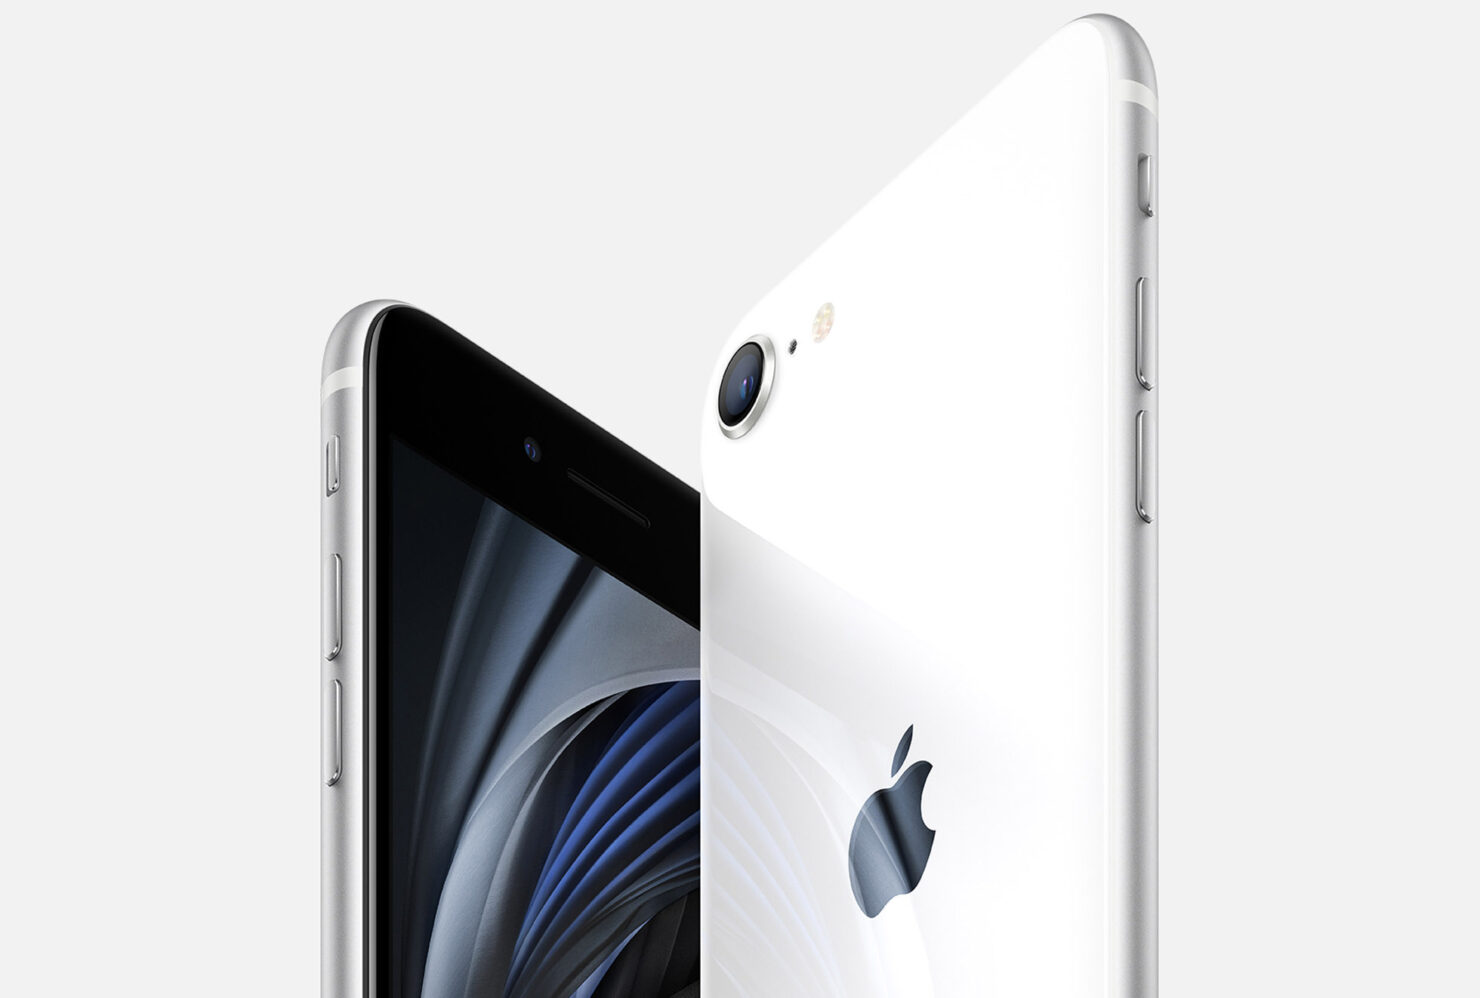 Apple's 2020 iPhone SE Might Discourage Buyers Due to Lack of 5G, but Is an Ideal Upgrade for iPhone 6 Owners